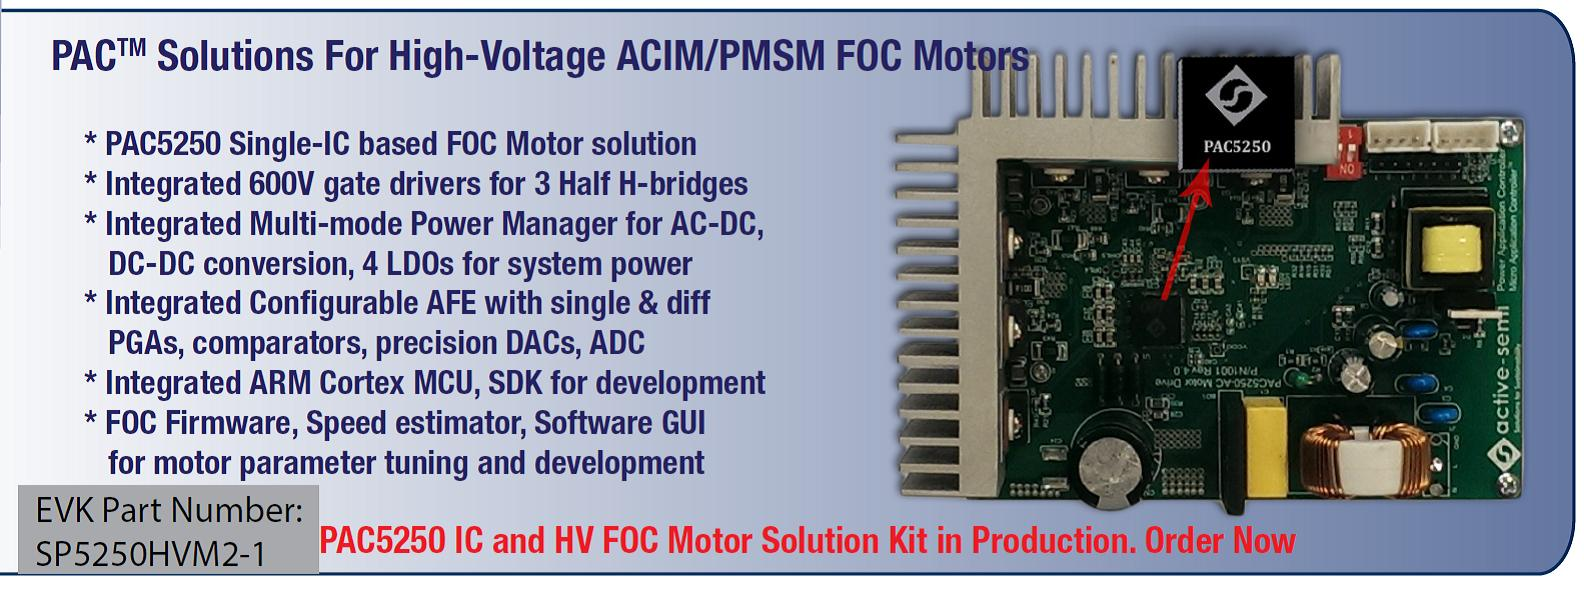 PAC Solutions for High-Voltage ACIM PMSM FOC Motors